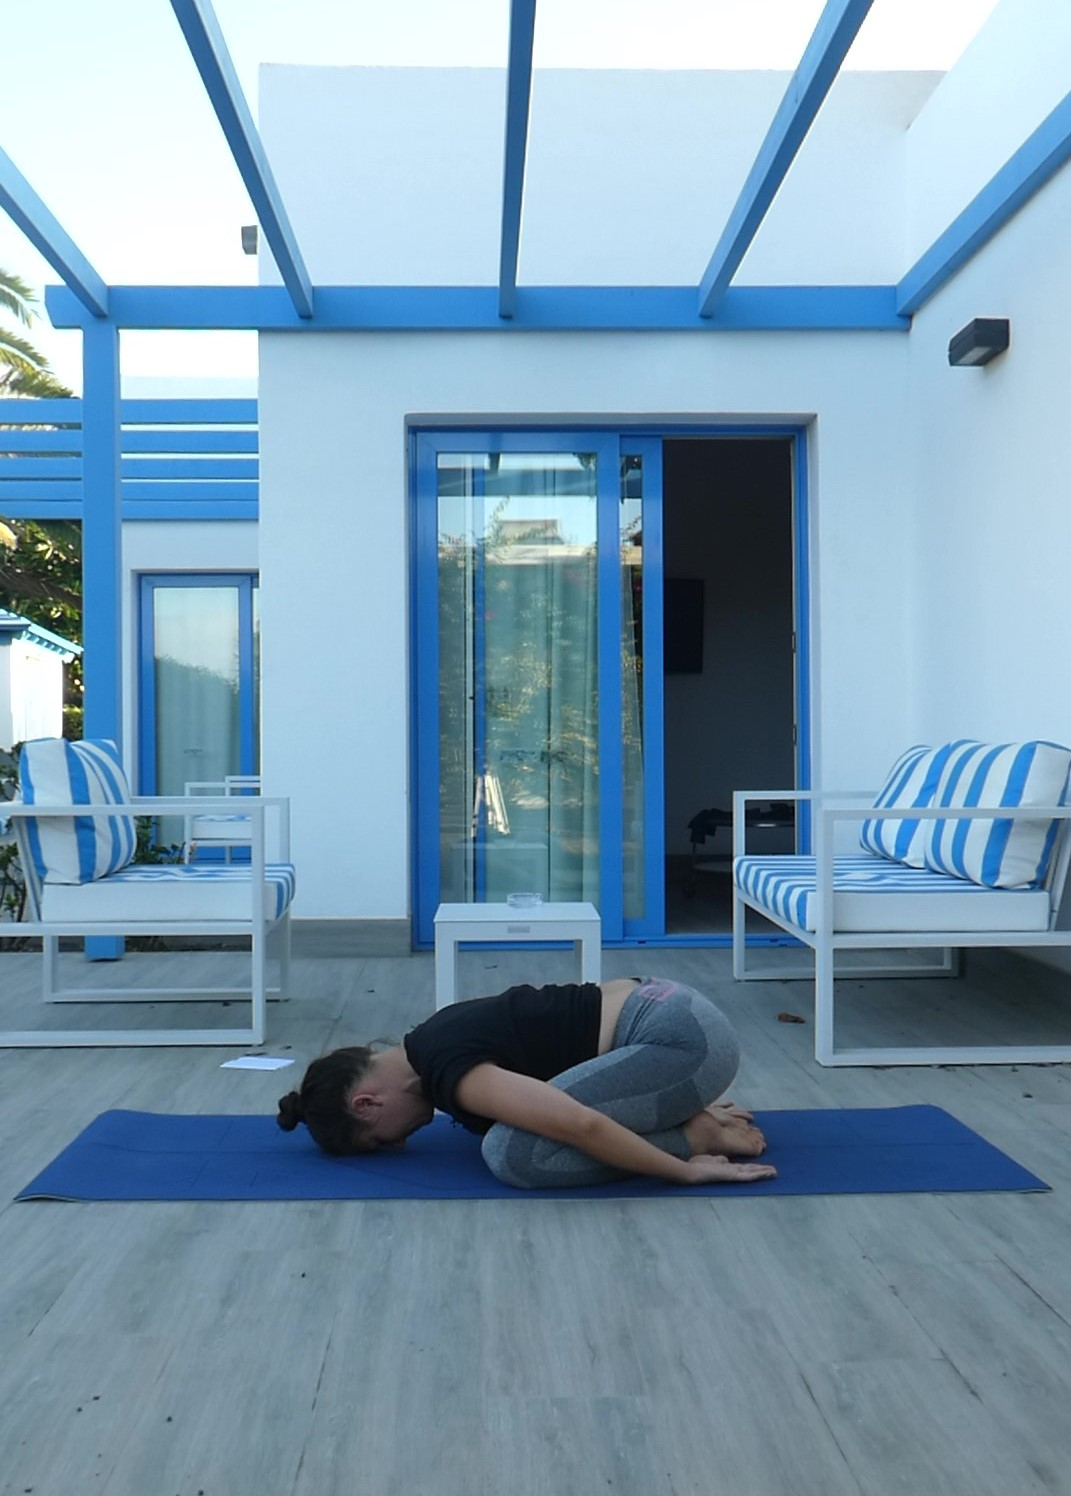 Posture de l'enfant, child pose, balasana, yoga